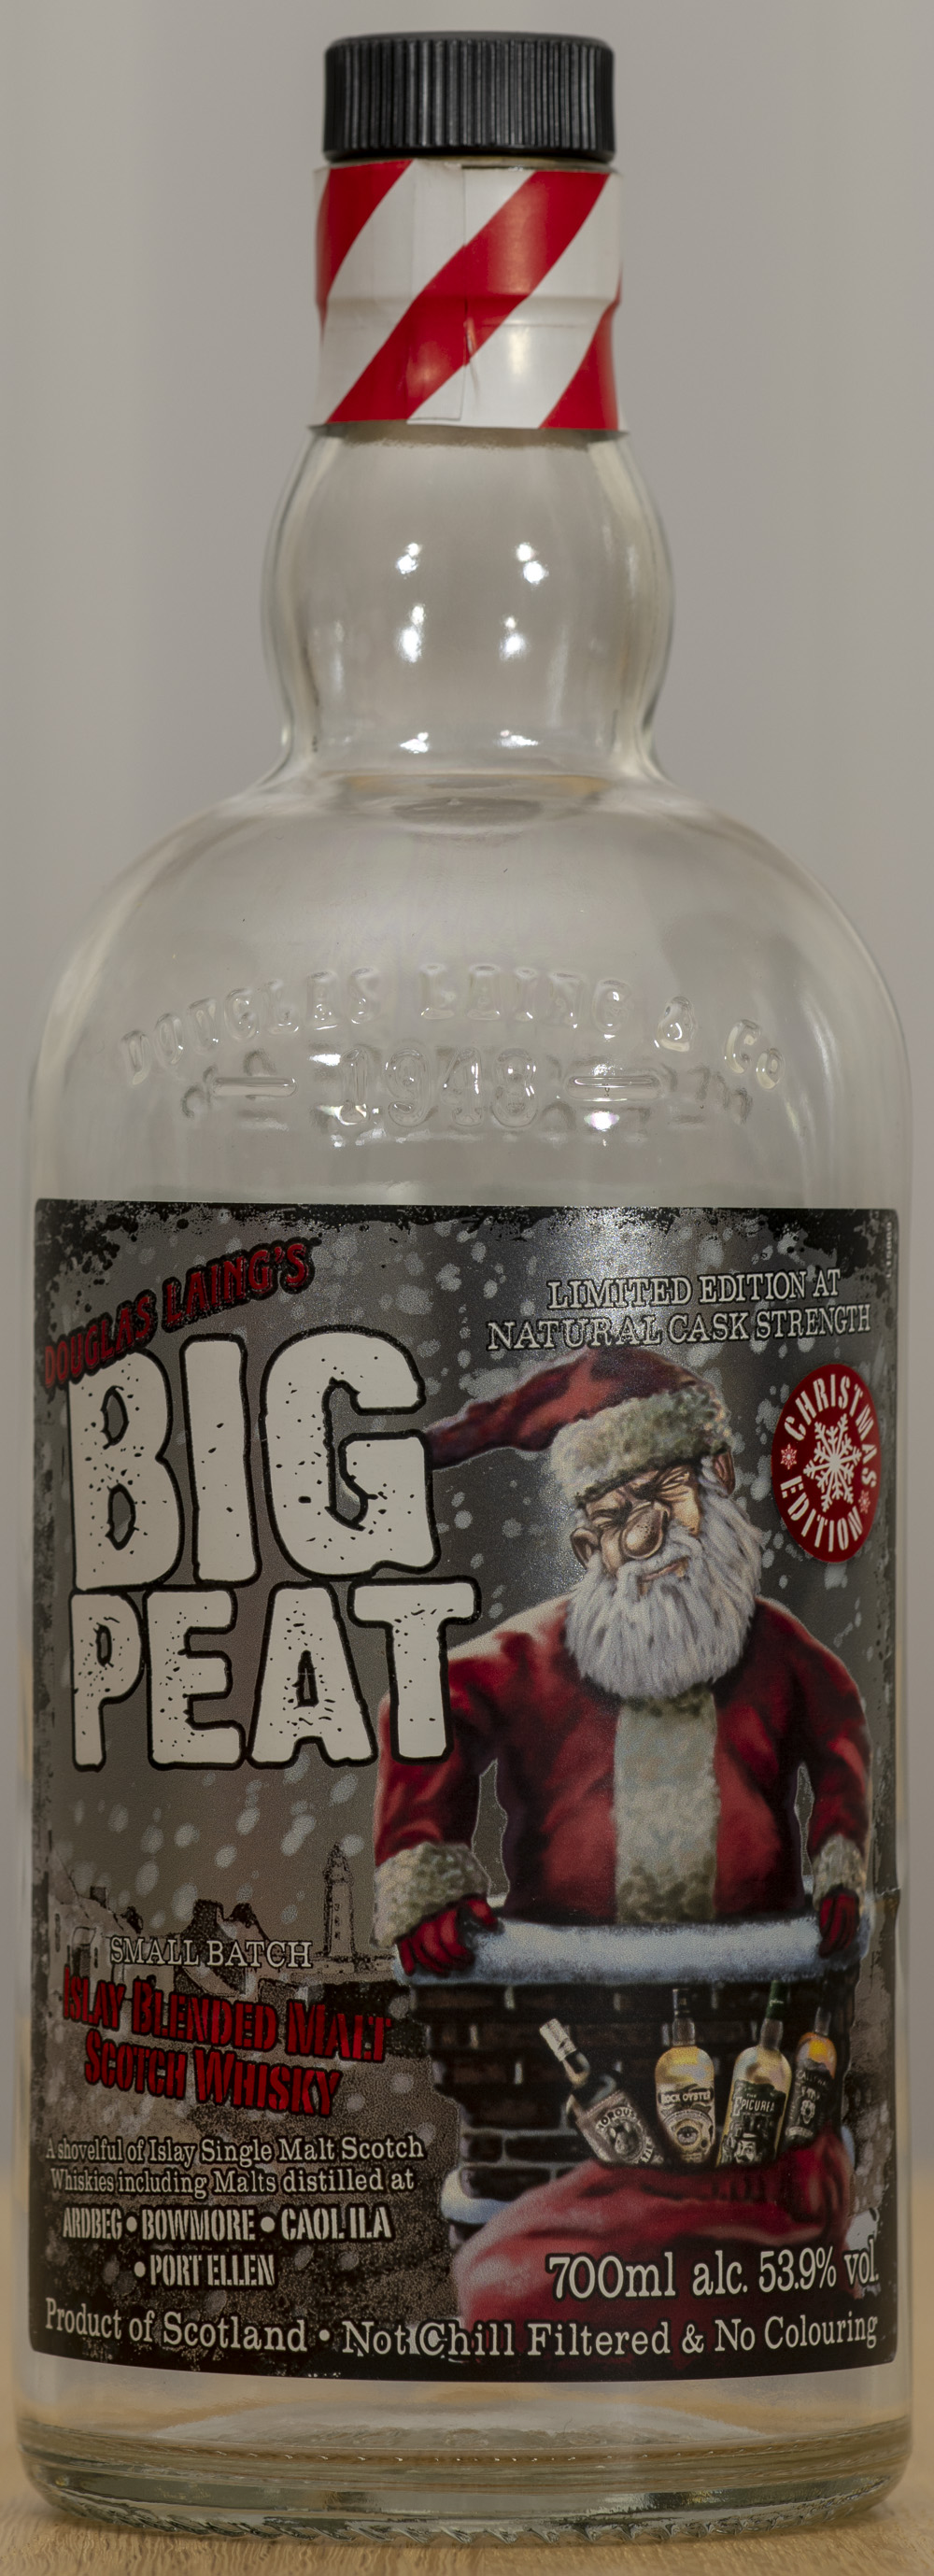 Billede: PHC_1566 - Big Peat Christmas Edition 2018 - bottle front.jpg